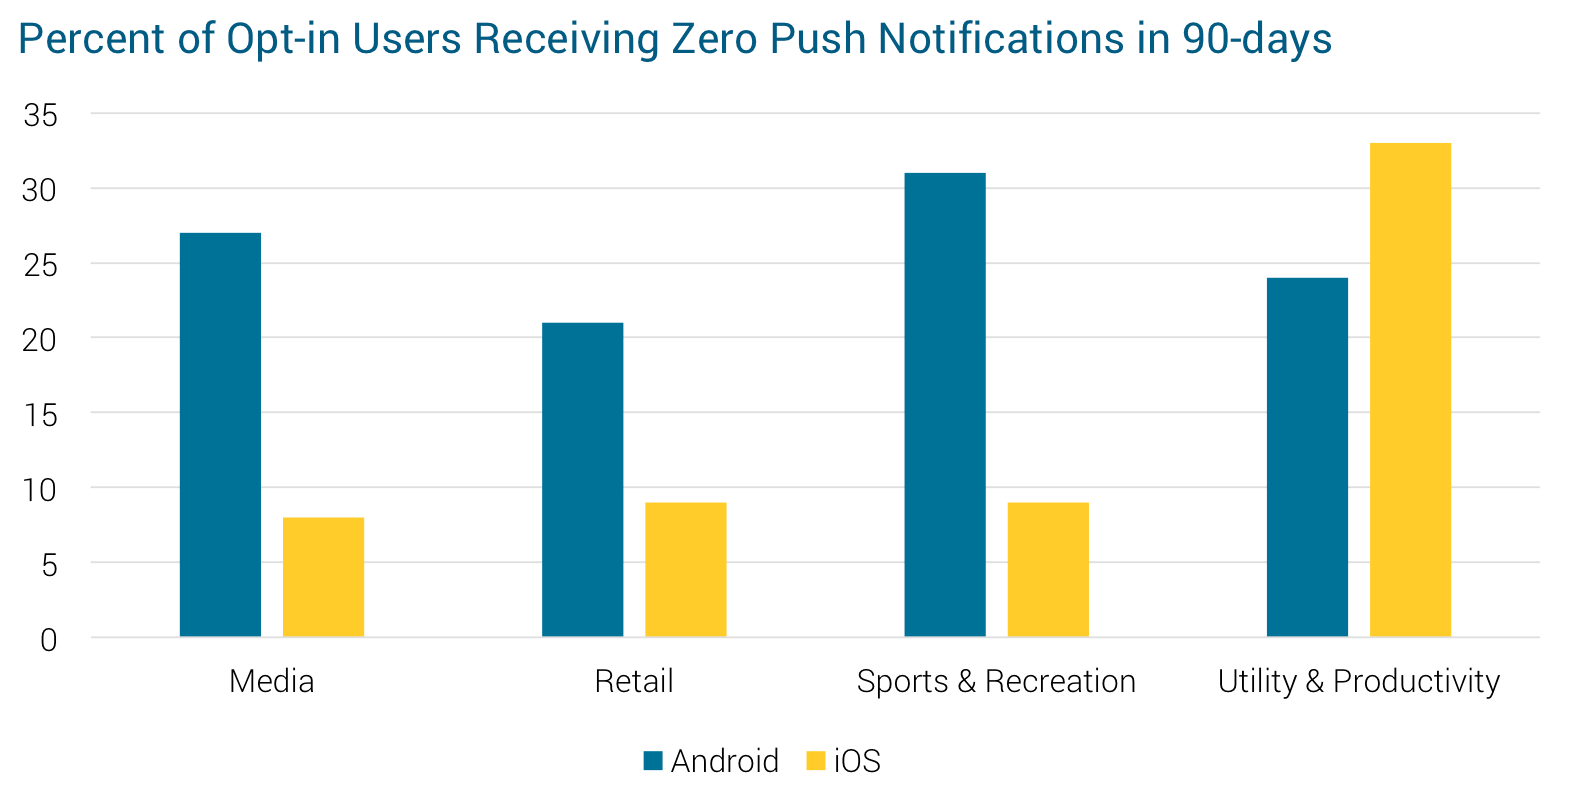 Urban Airship's Mobile App Retention Study for Key Industry